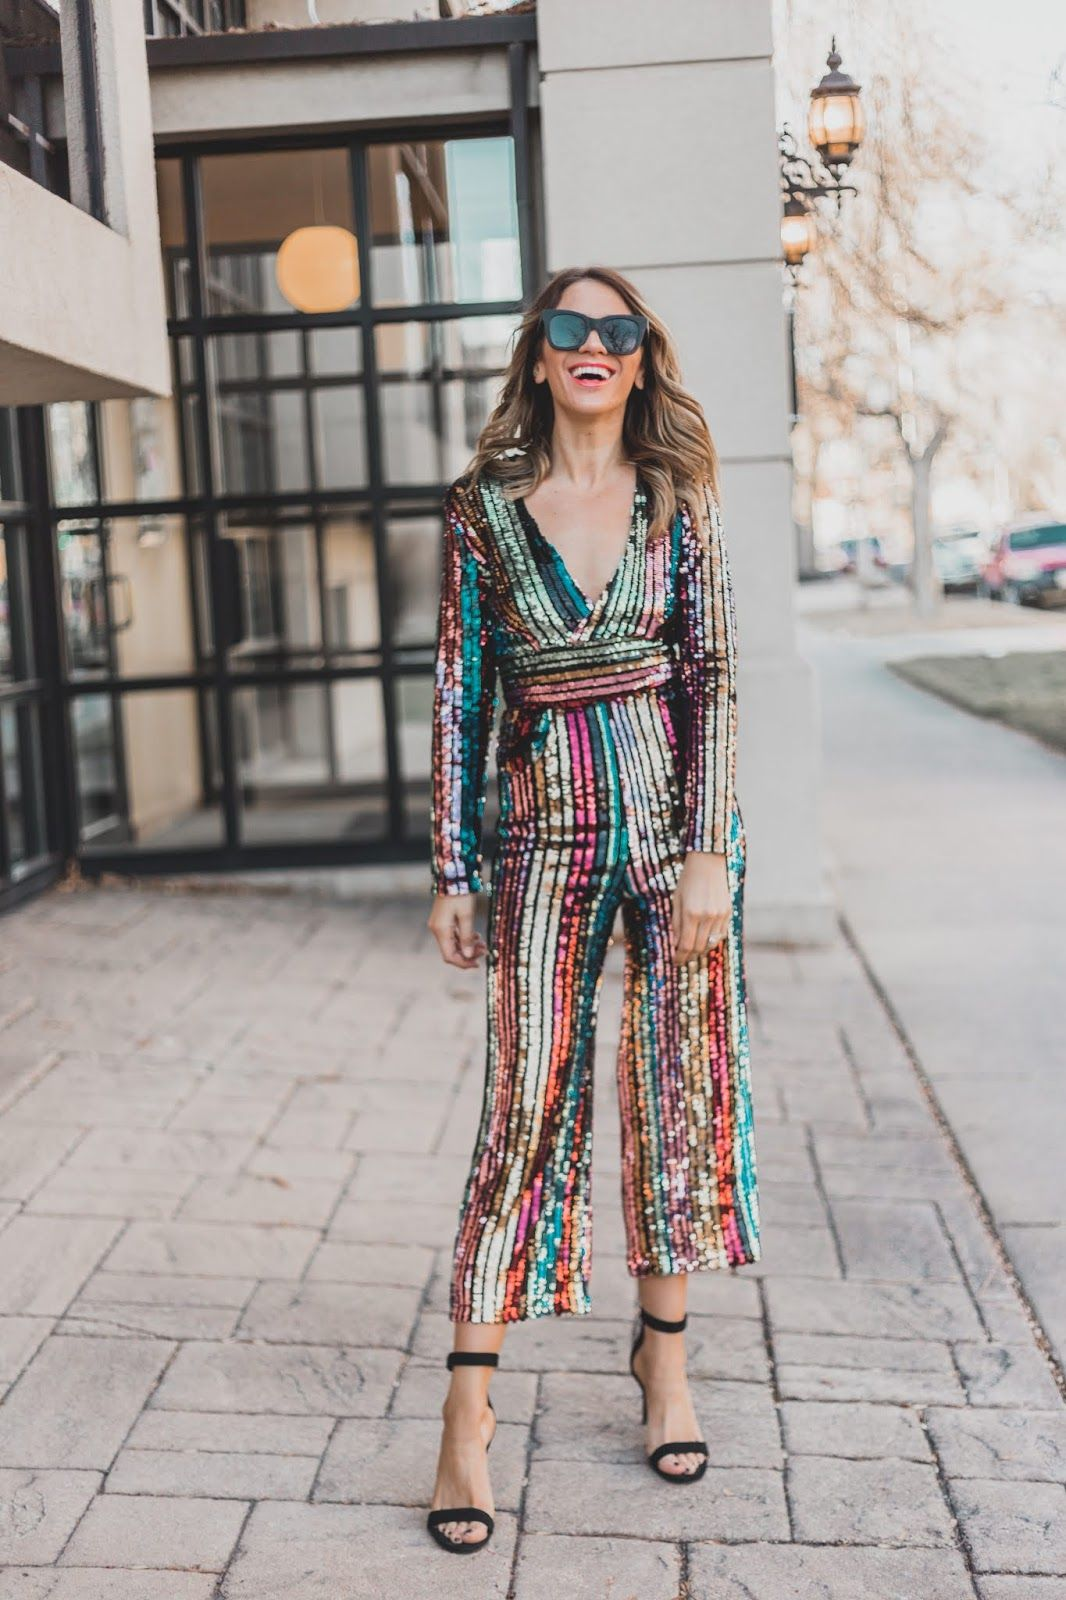 15 Best New Years Eve Outfits For 2021